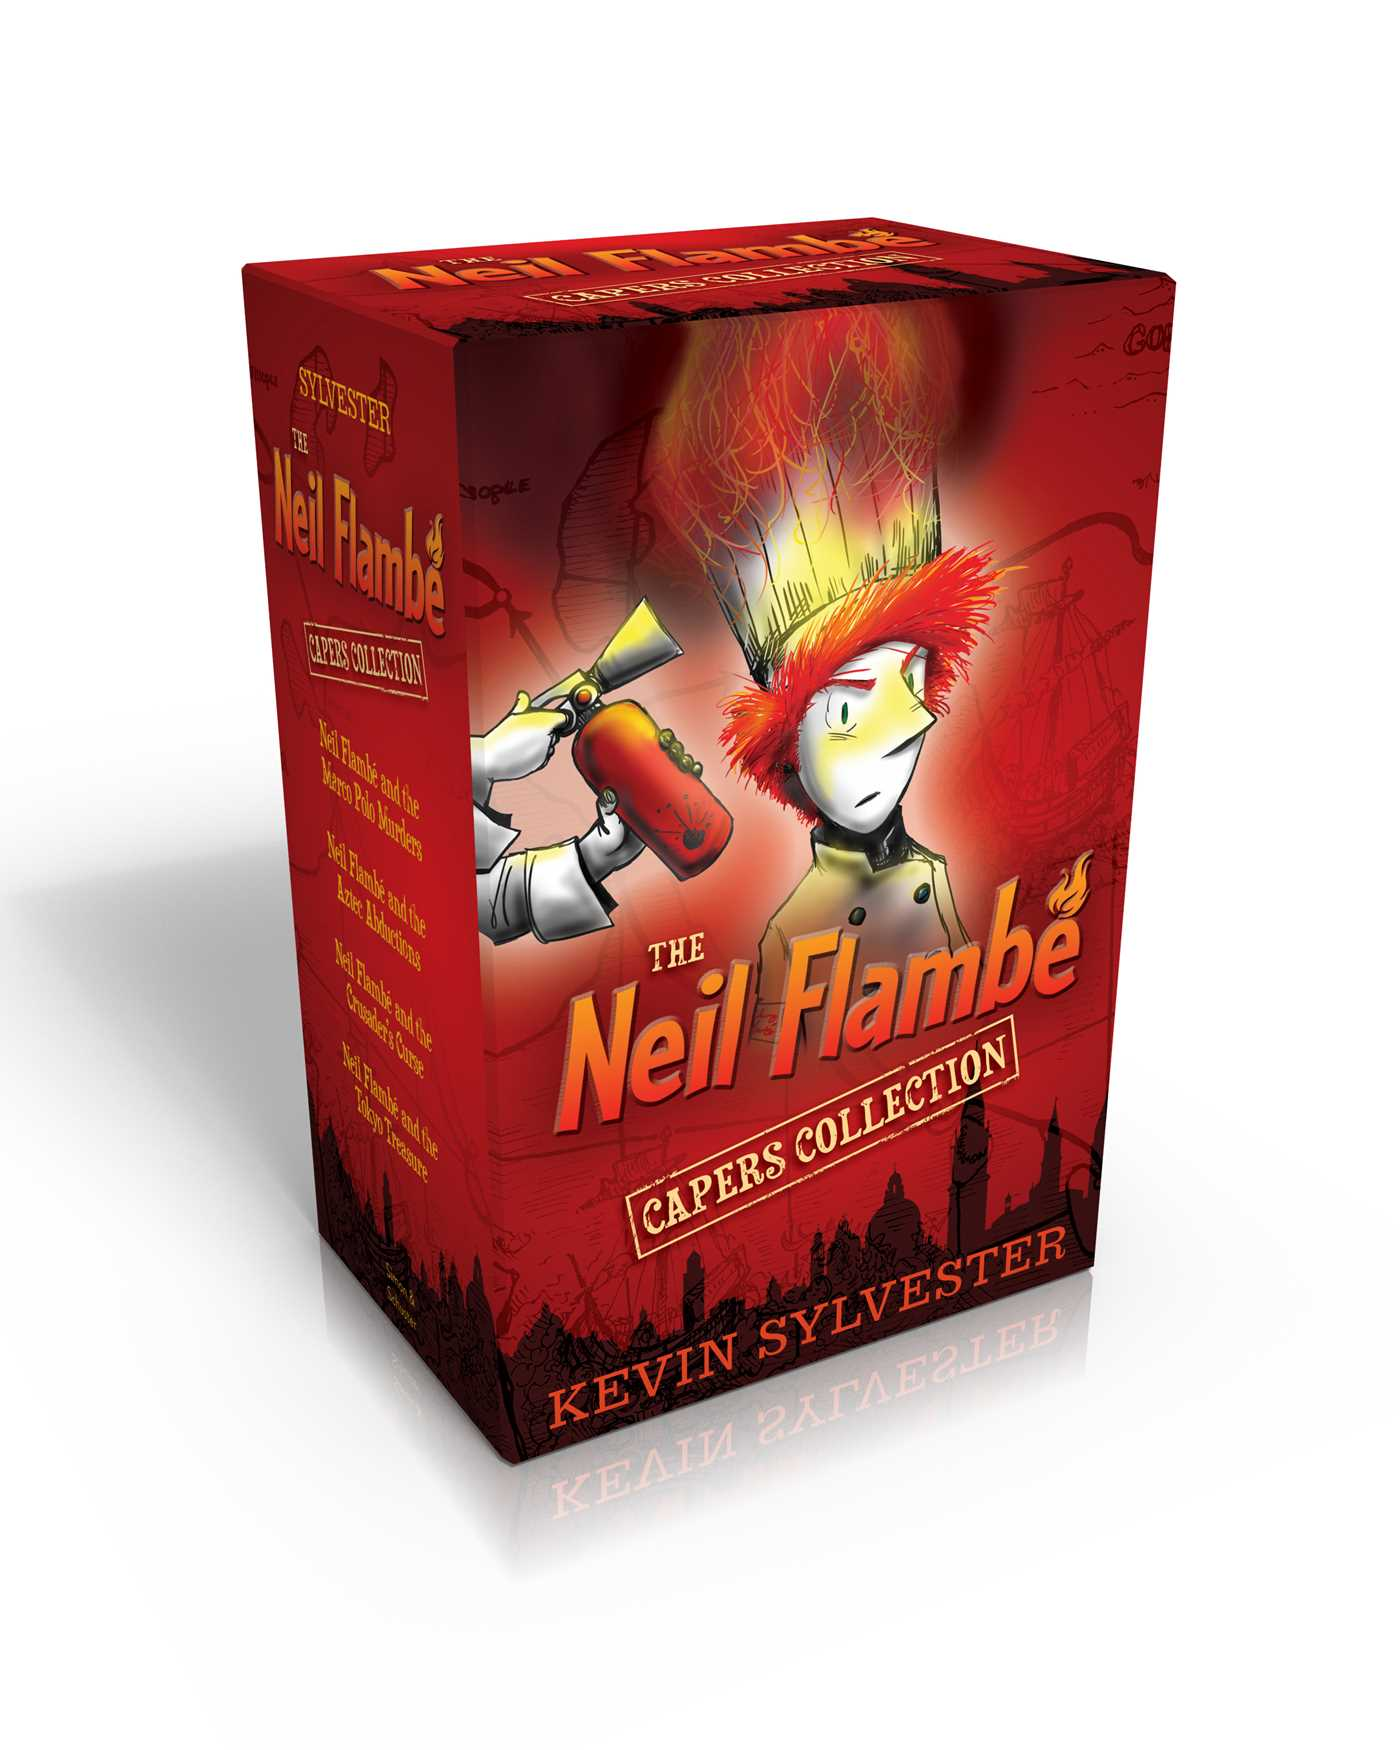 Neil-flambe-capers-collection-9781481432382_hr